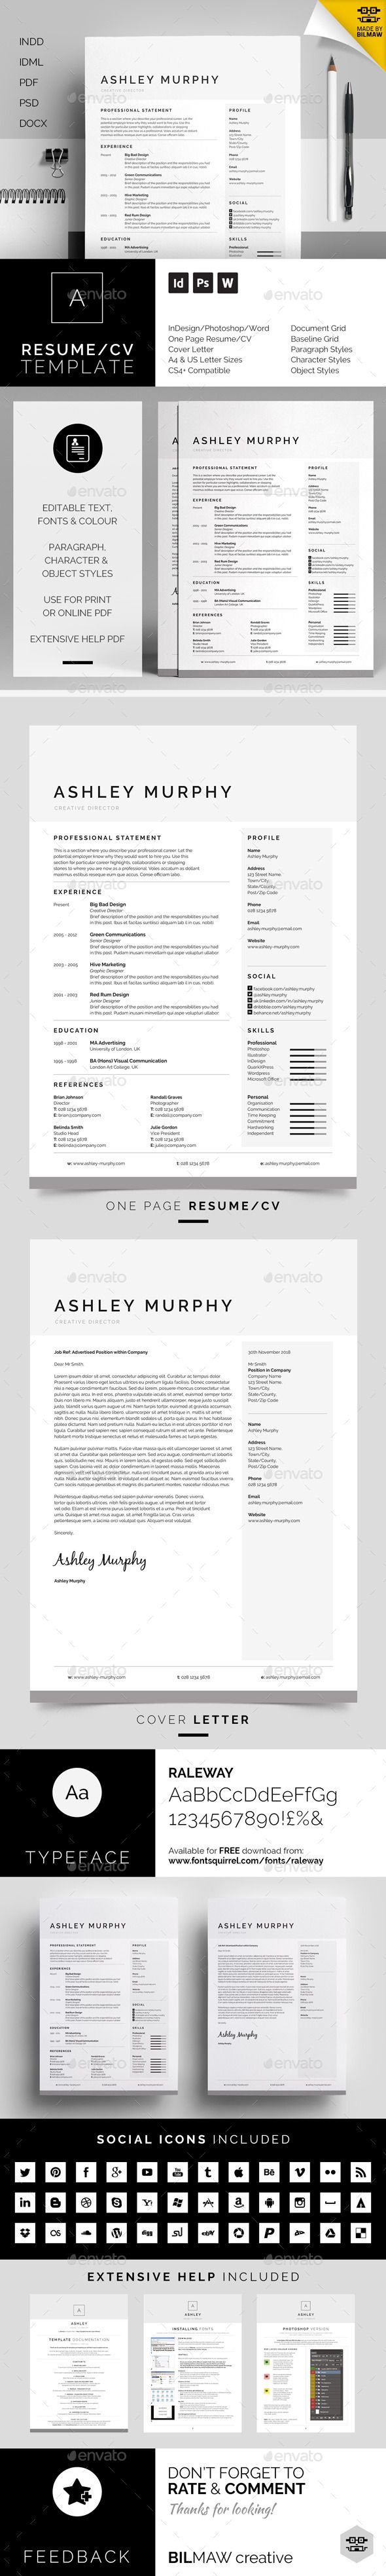 group proposal template%0A Us Area Codes 844